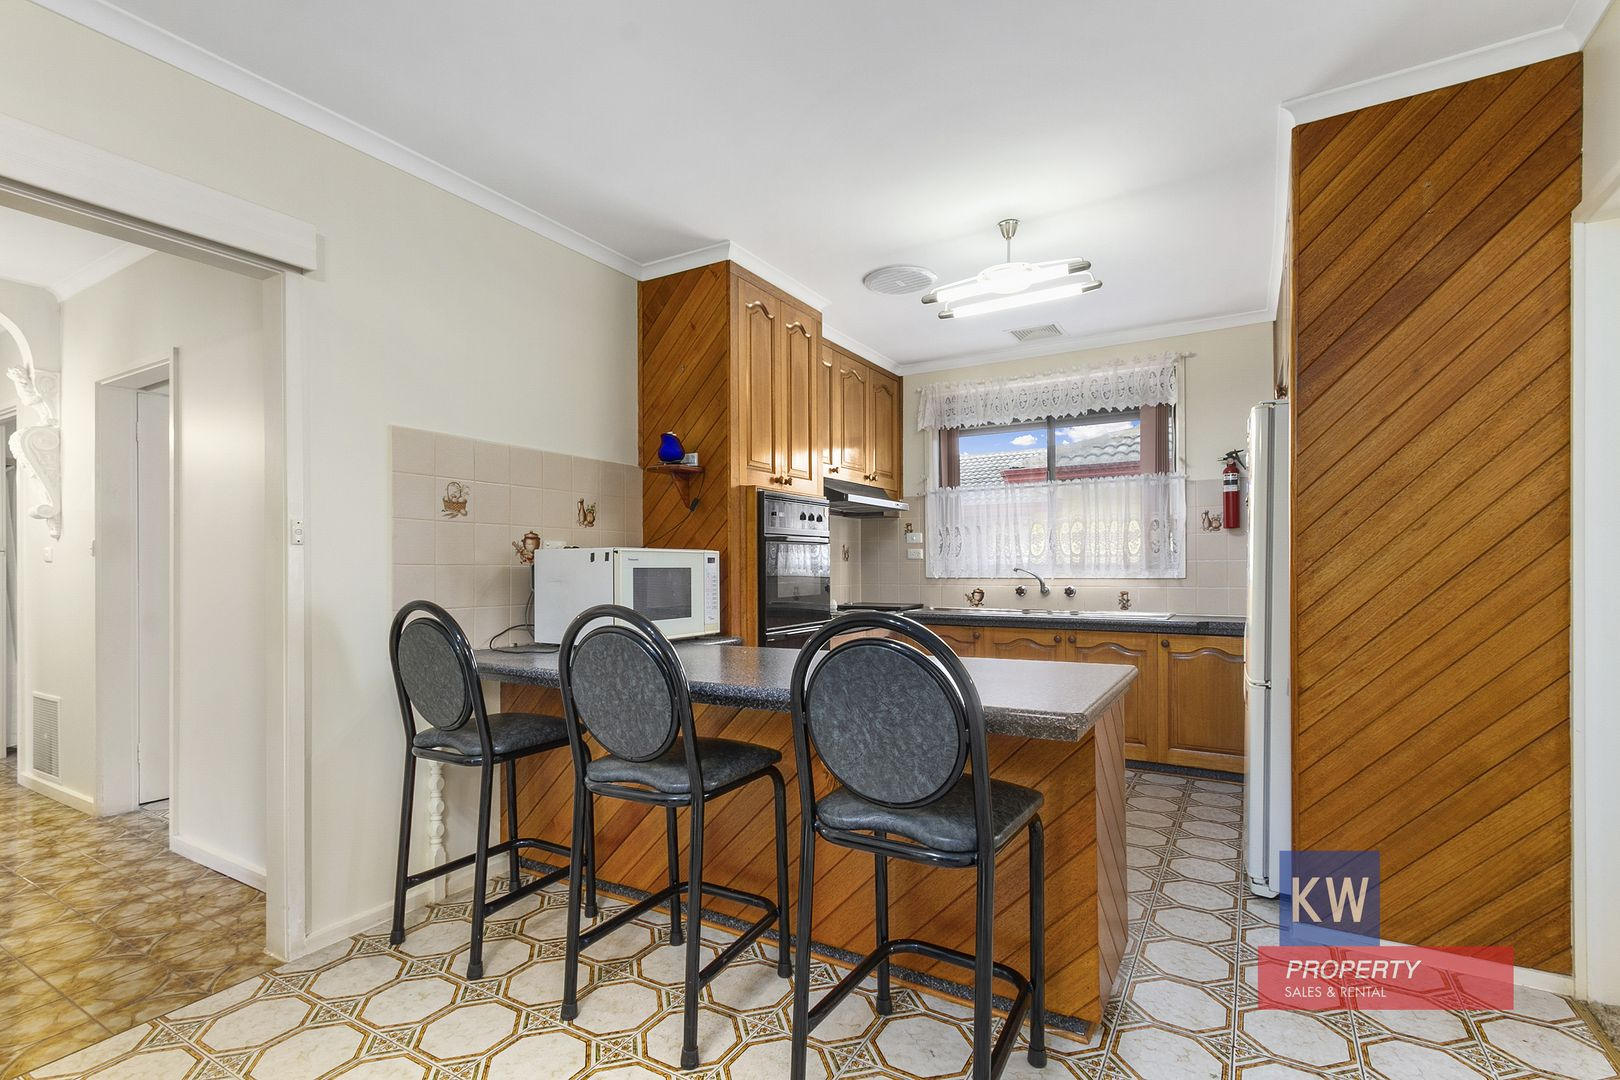 193 Service Rd, Moe VIC 3825, Image 1